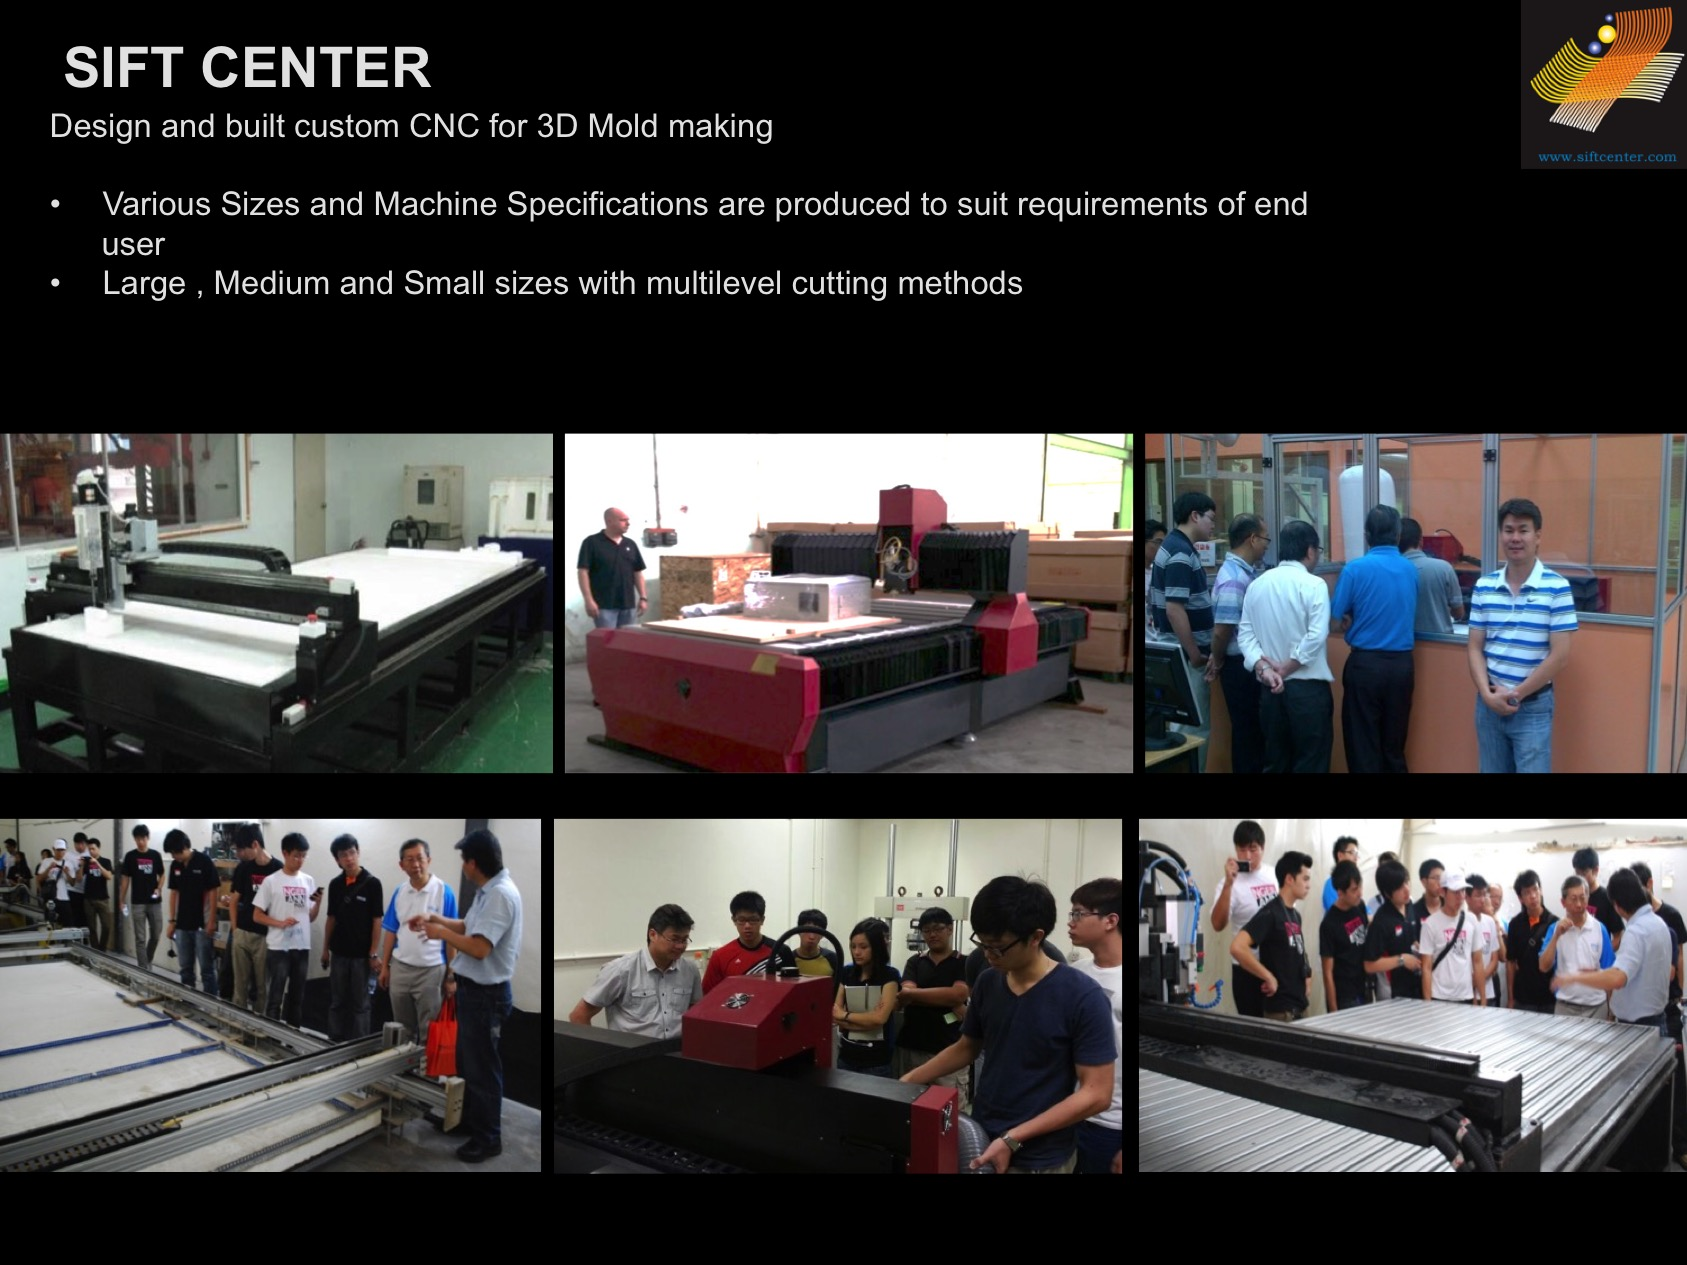 Sift Center : CNC Machine Division